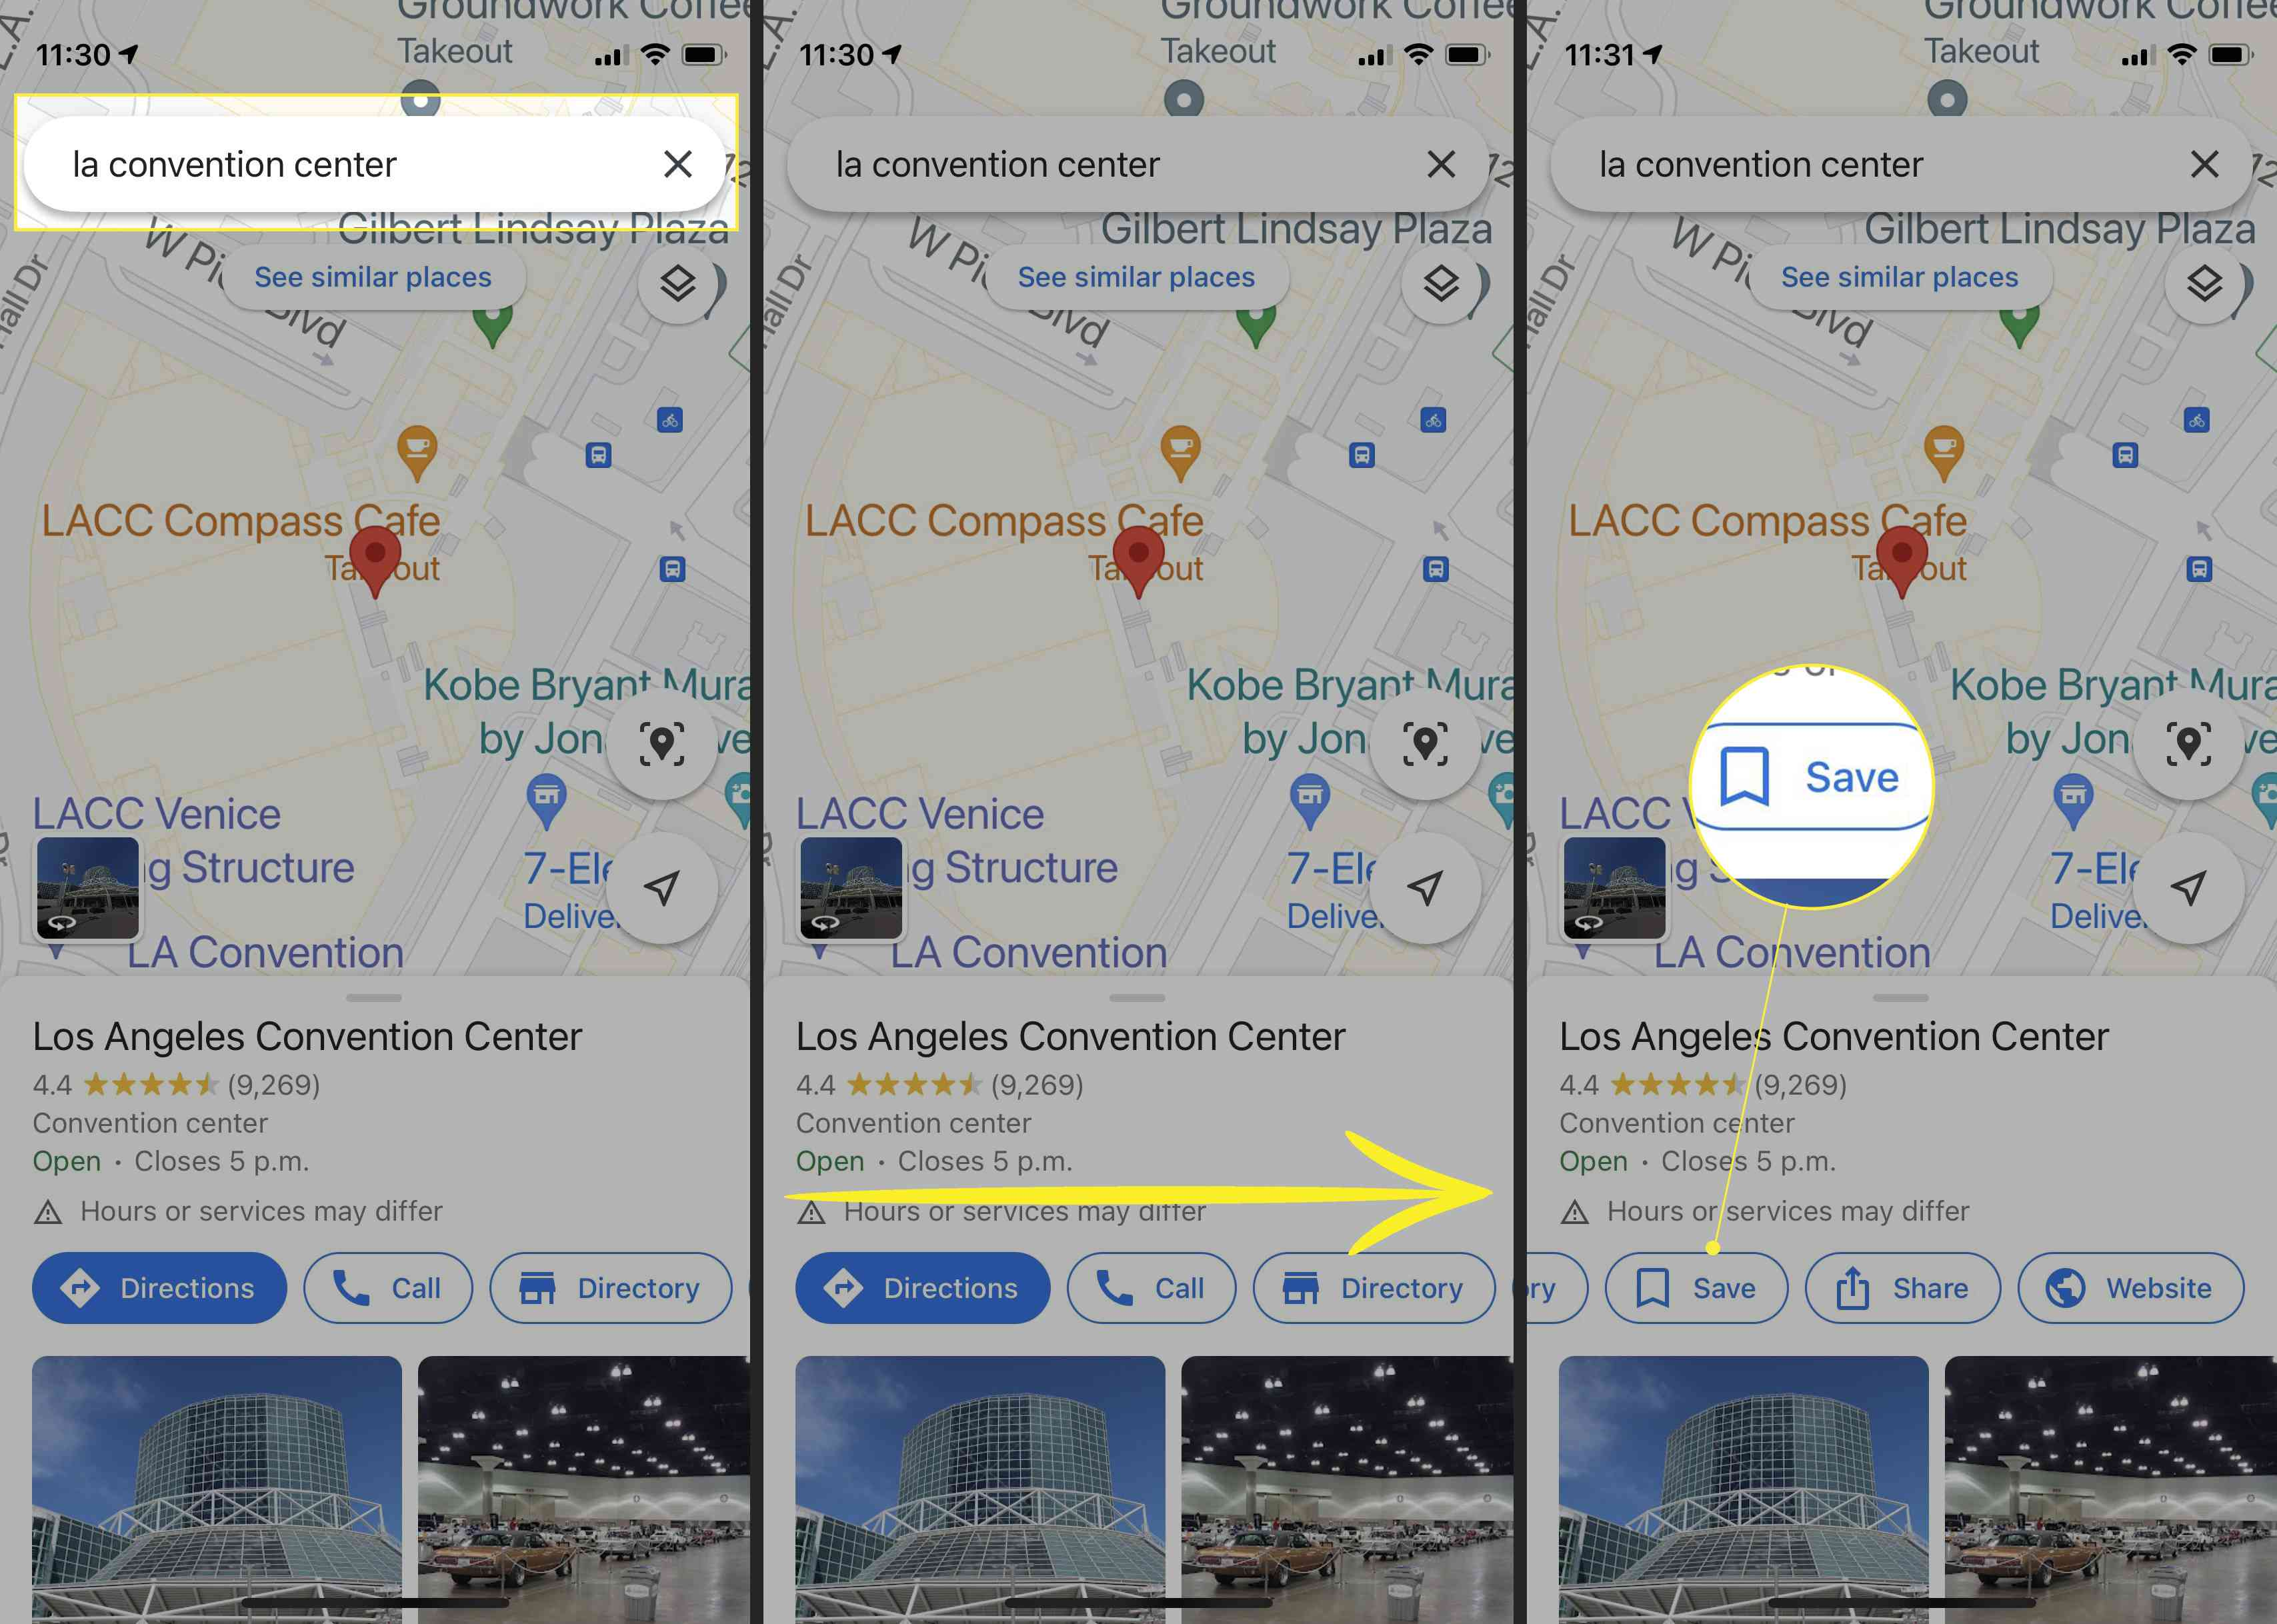 Google Maps on iPhone with location search box highlighted, arrow indicating swipe right, and Save highlighted